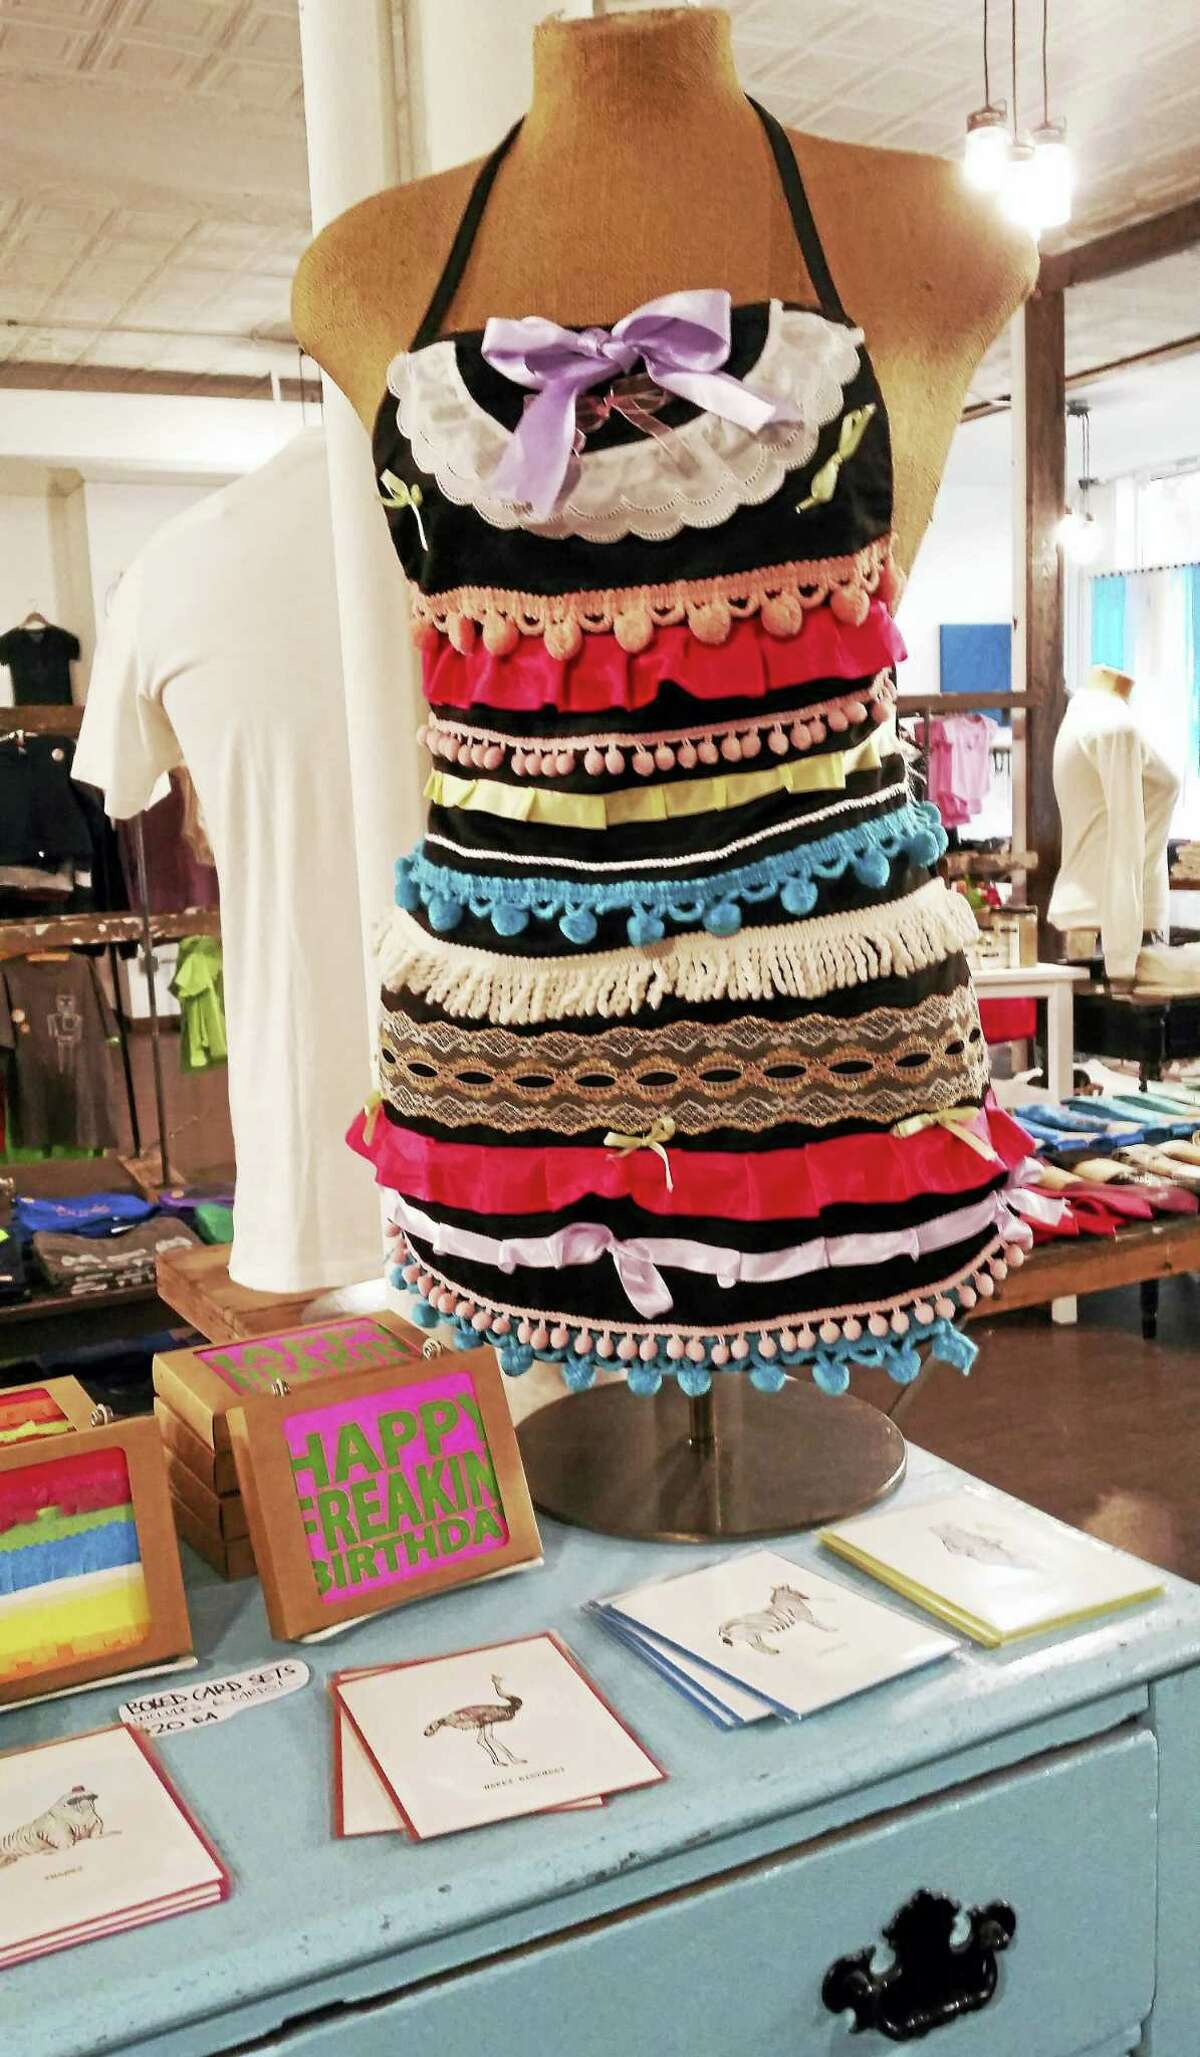 Colorful edging turns a run-of-the-mill apron into a dazzling minidress at Cinder + Salt, the new retail shop at 520 Main St., Middletown. Owner and creative director Rachel DeCavage hand draws and screen prints her upscale tee-shirt designs.